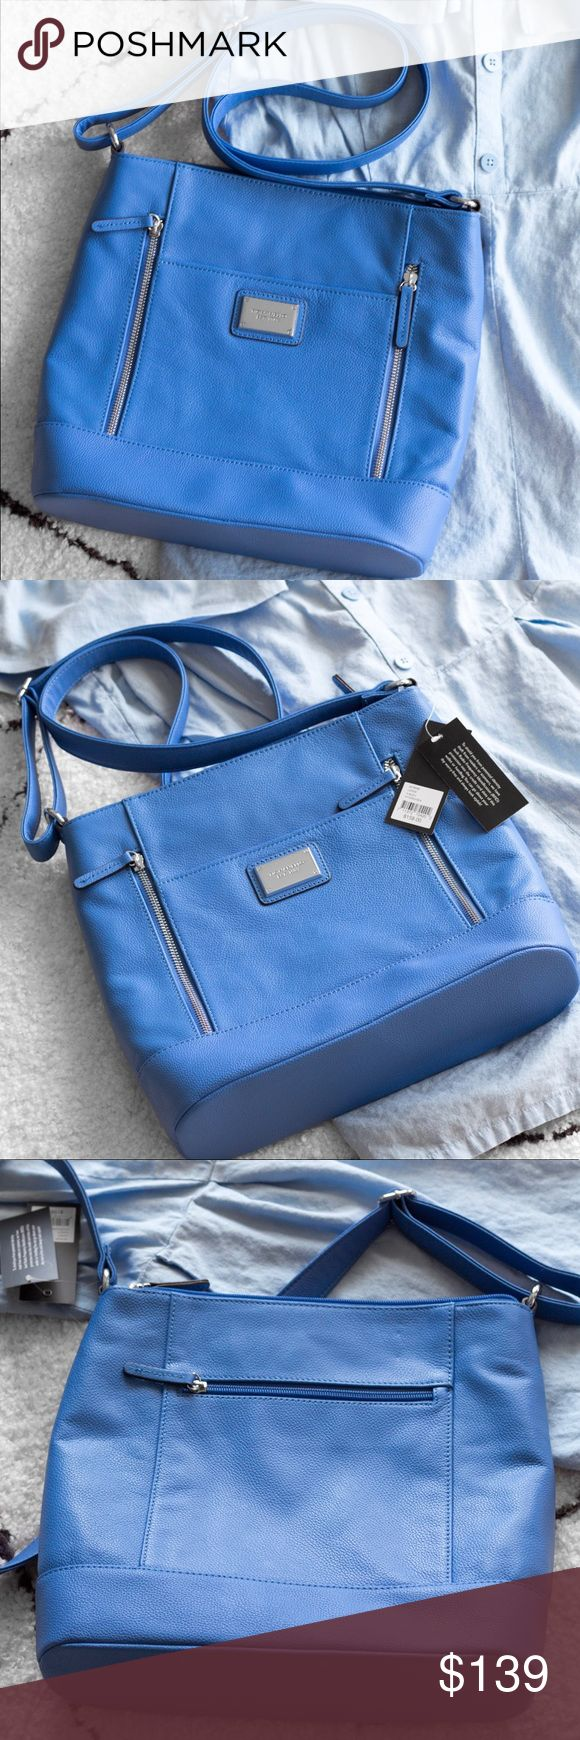 Tignanello Large Crossbody Bag BRAND NEW WITH TAGS  It has soooo many pockets. There's two separate sections inside with pockets in those too. Tignanello Bags Crossbody Bags